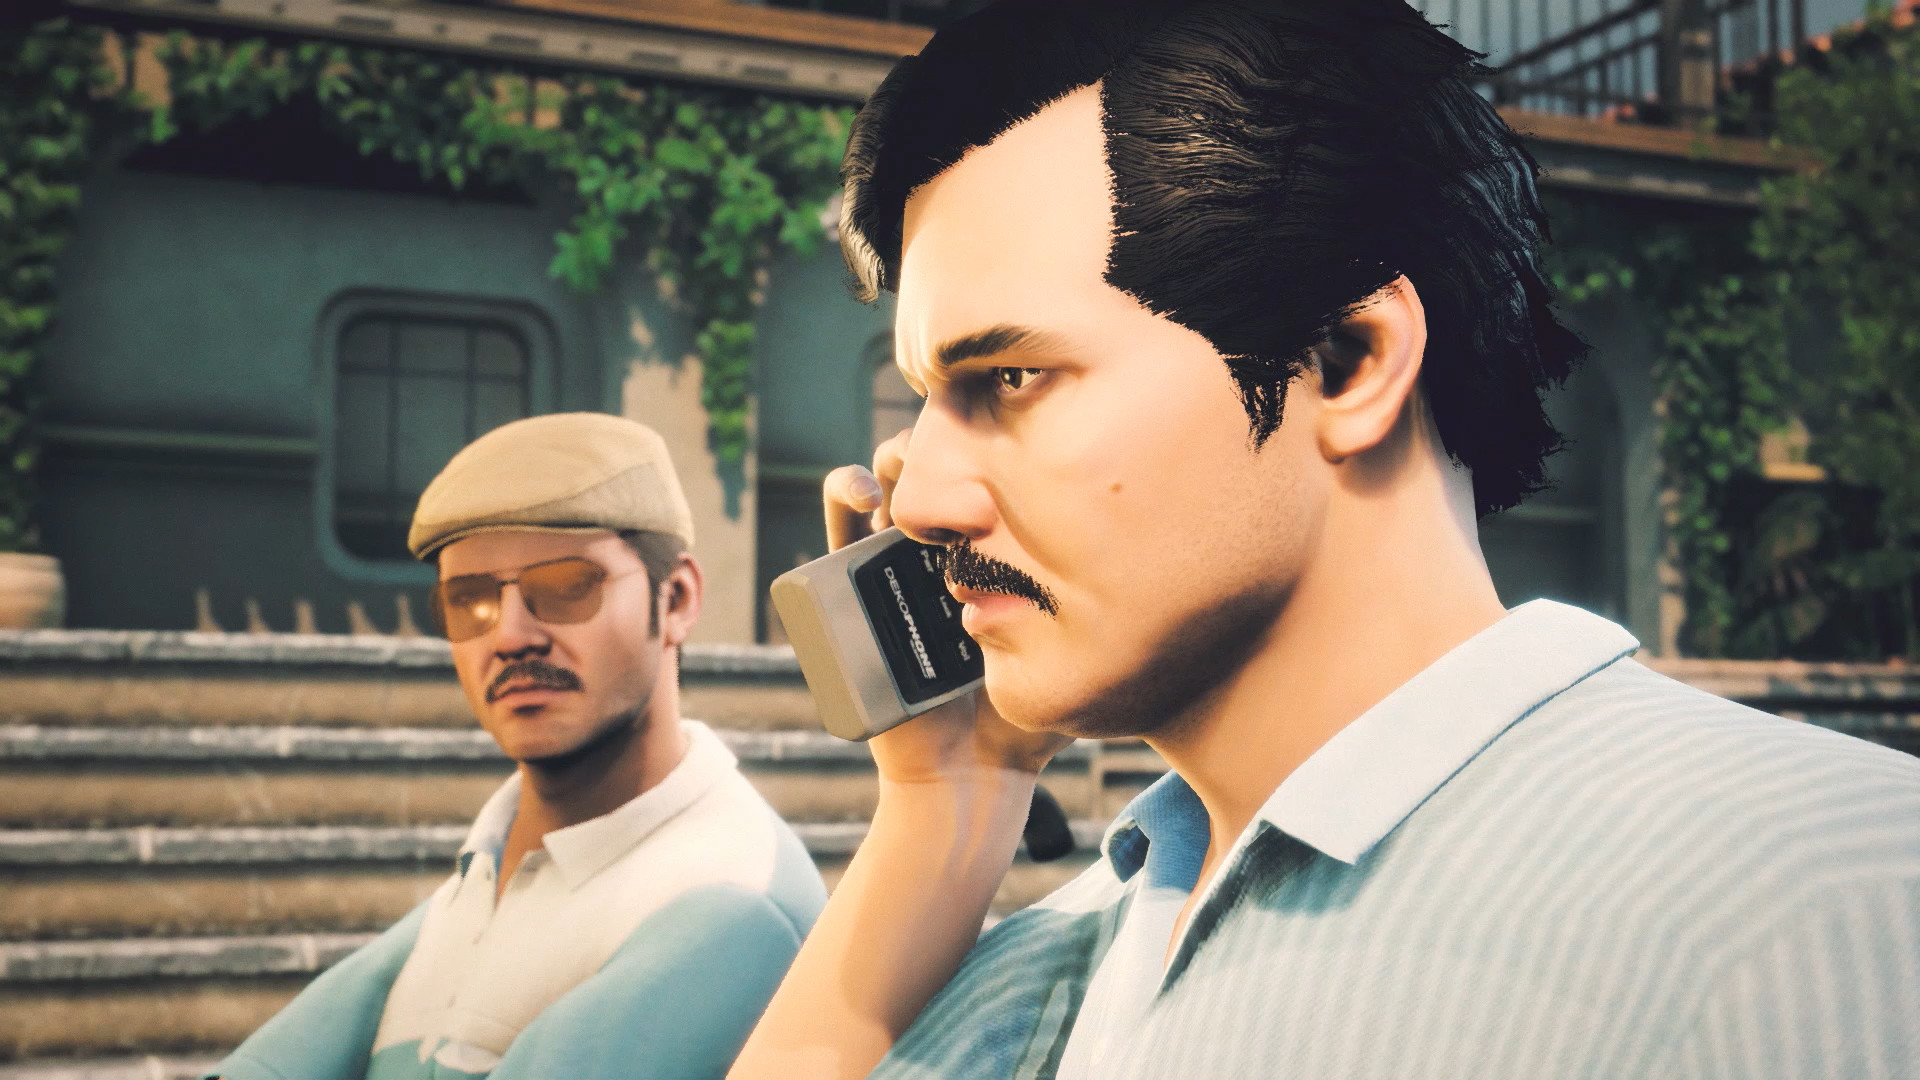 Narcos: Rise of the Cartels shows how one bad decision can ruin an entire game